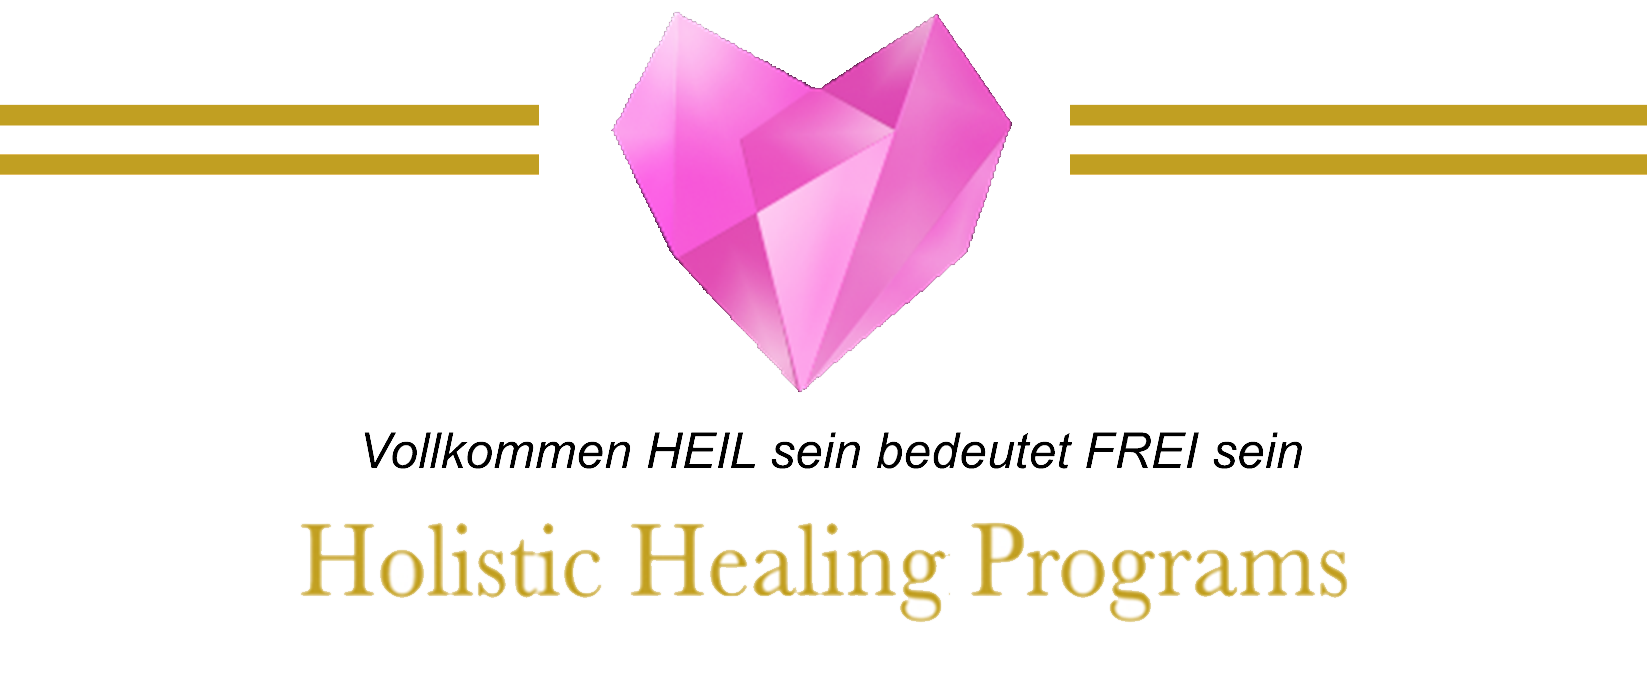 Holistic Healing Programs